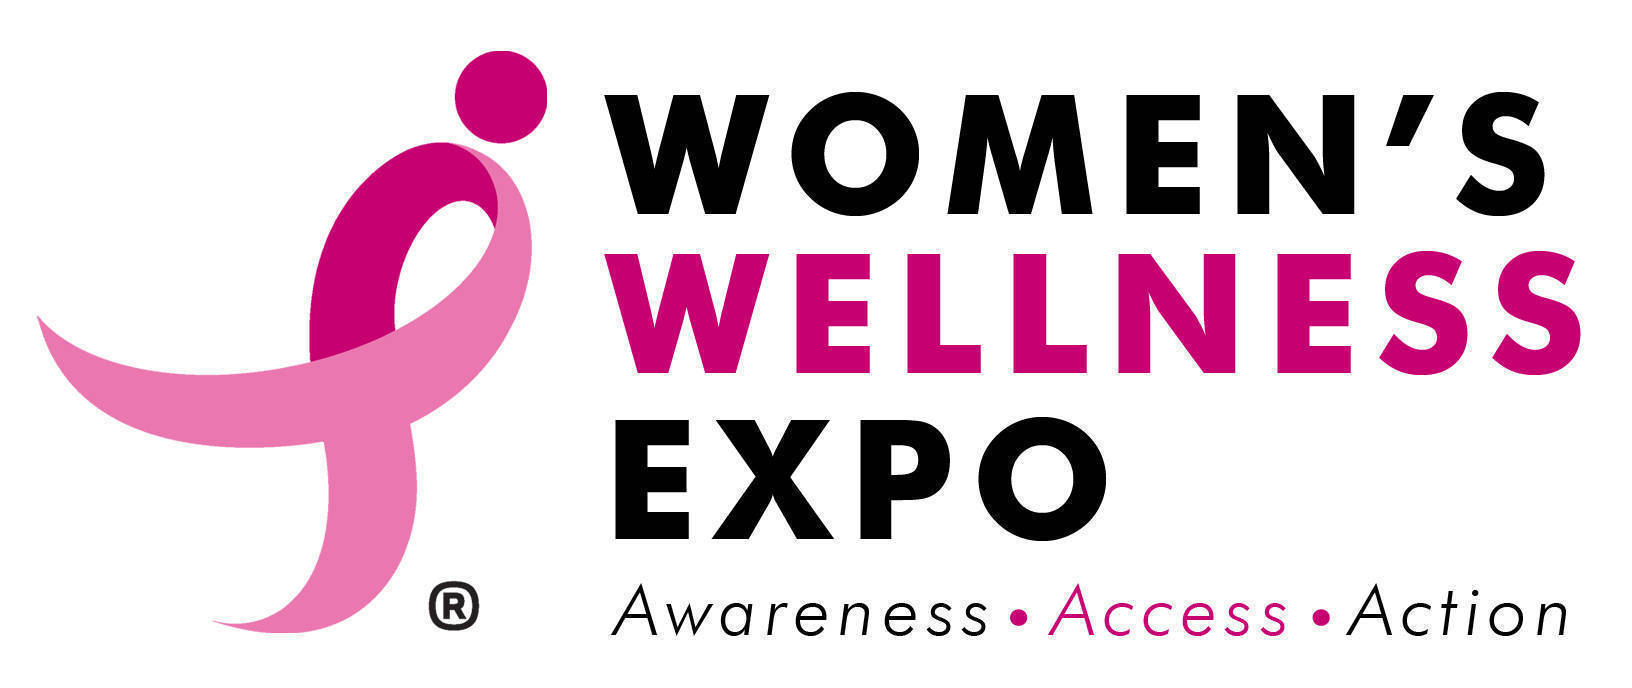 Susan G. Komen North Jersey to Present Free Women's Wellness Expo